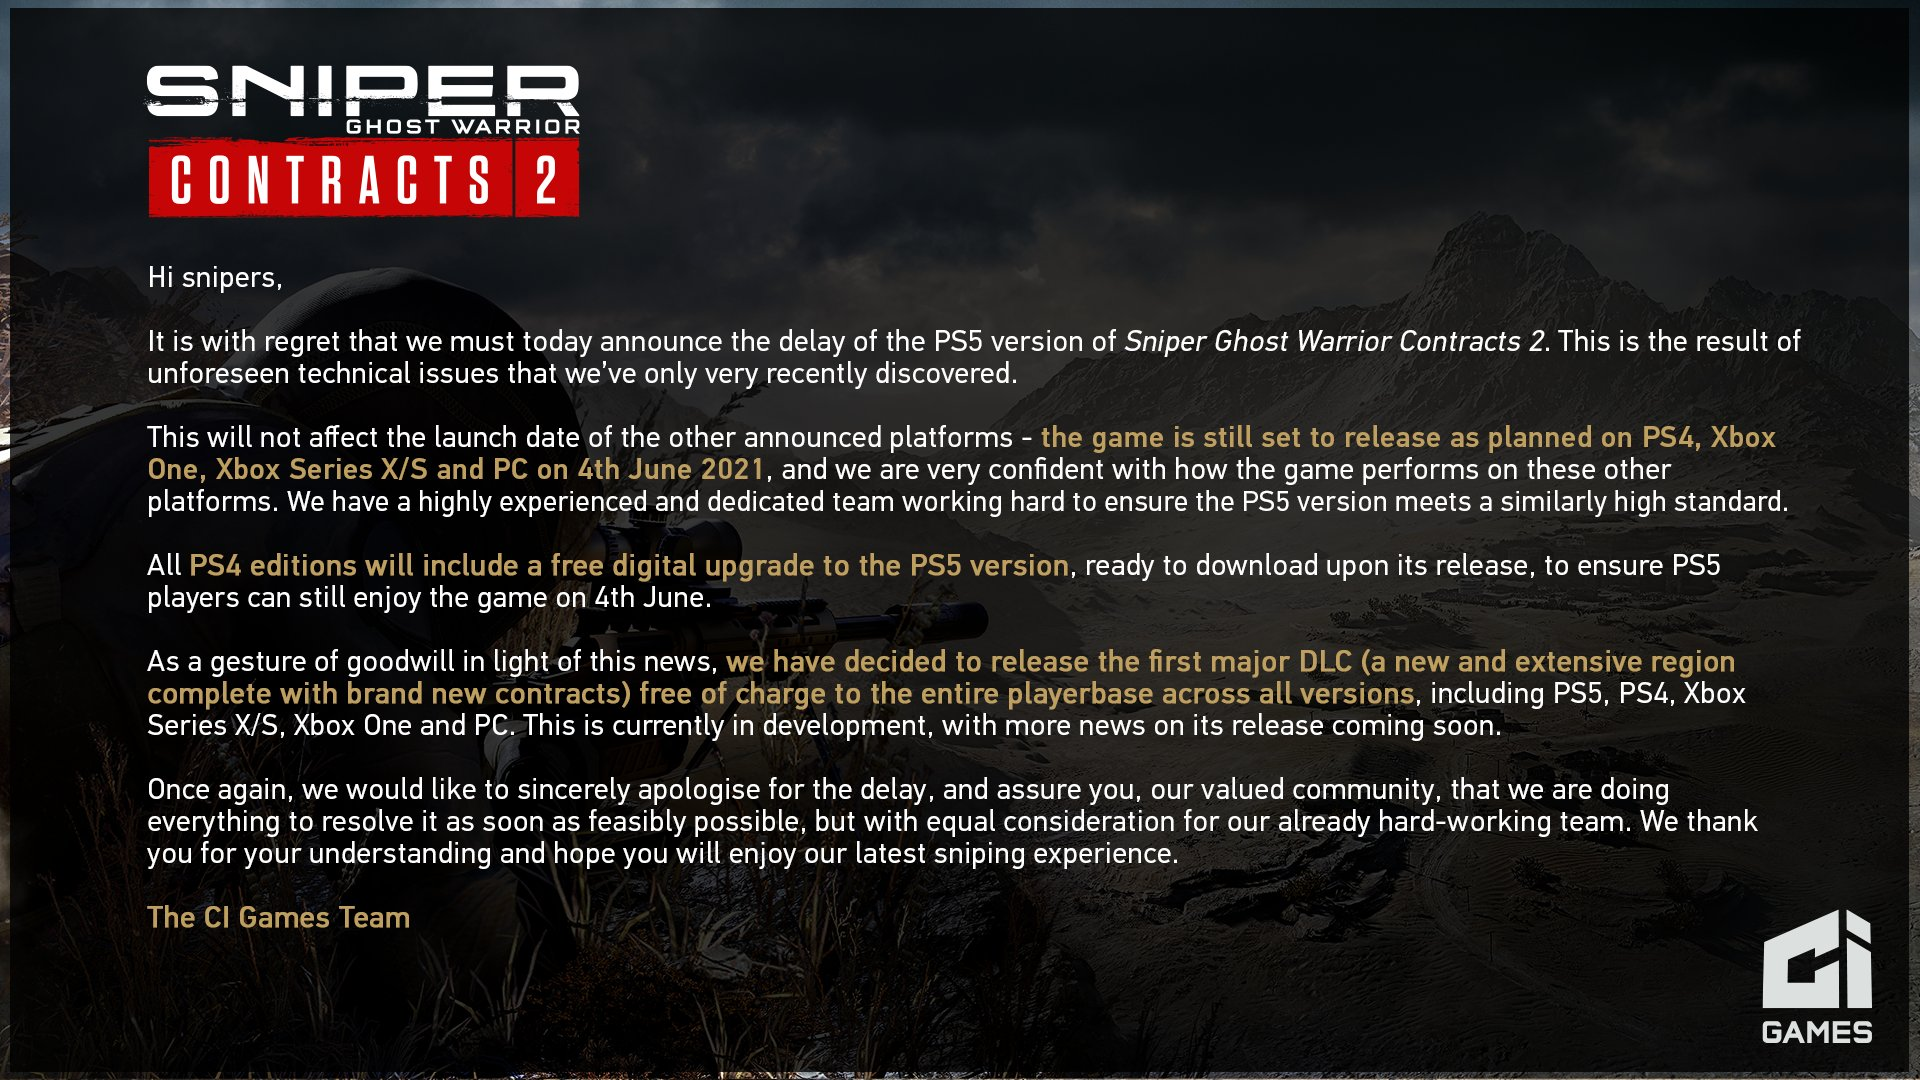 Sniper Ghost Warrior Contracts 2 for PS5 Delayed to Later in 2021